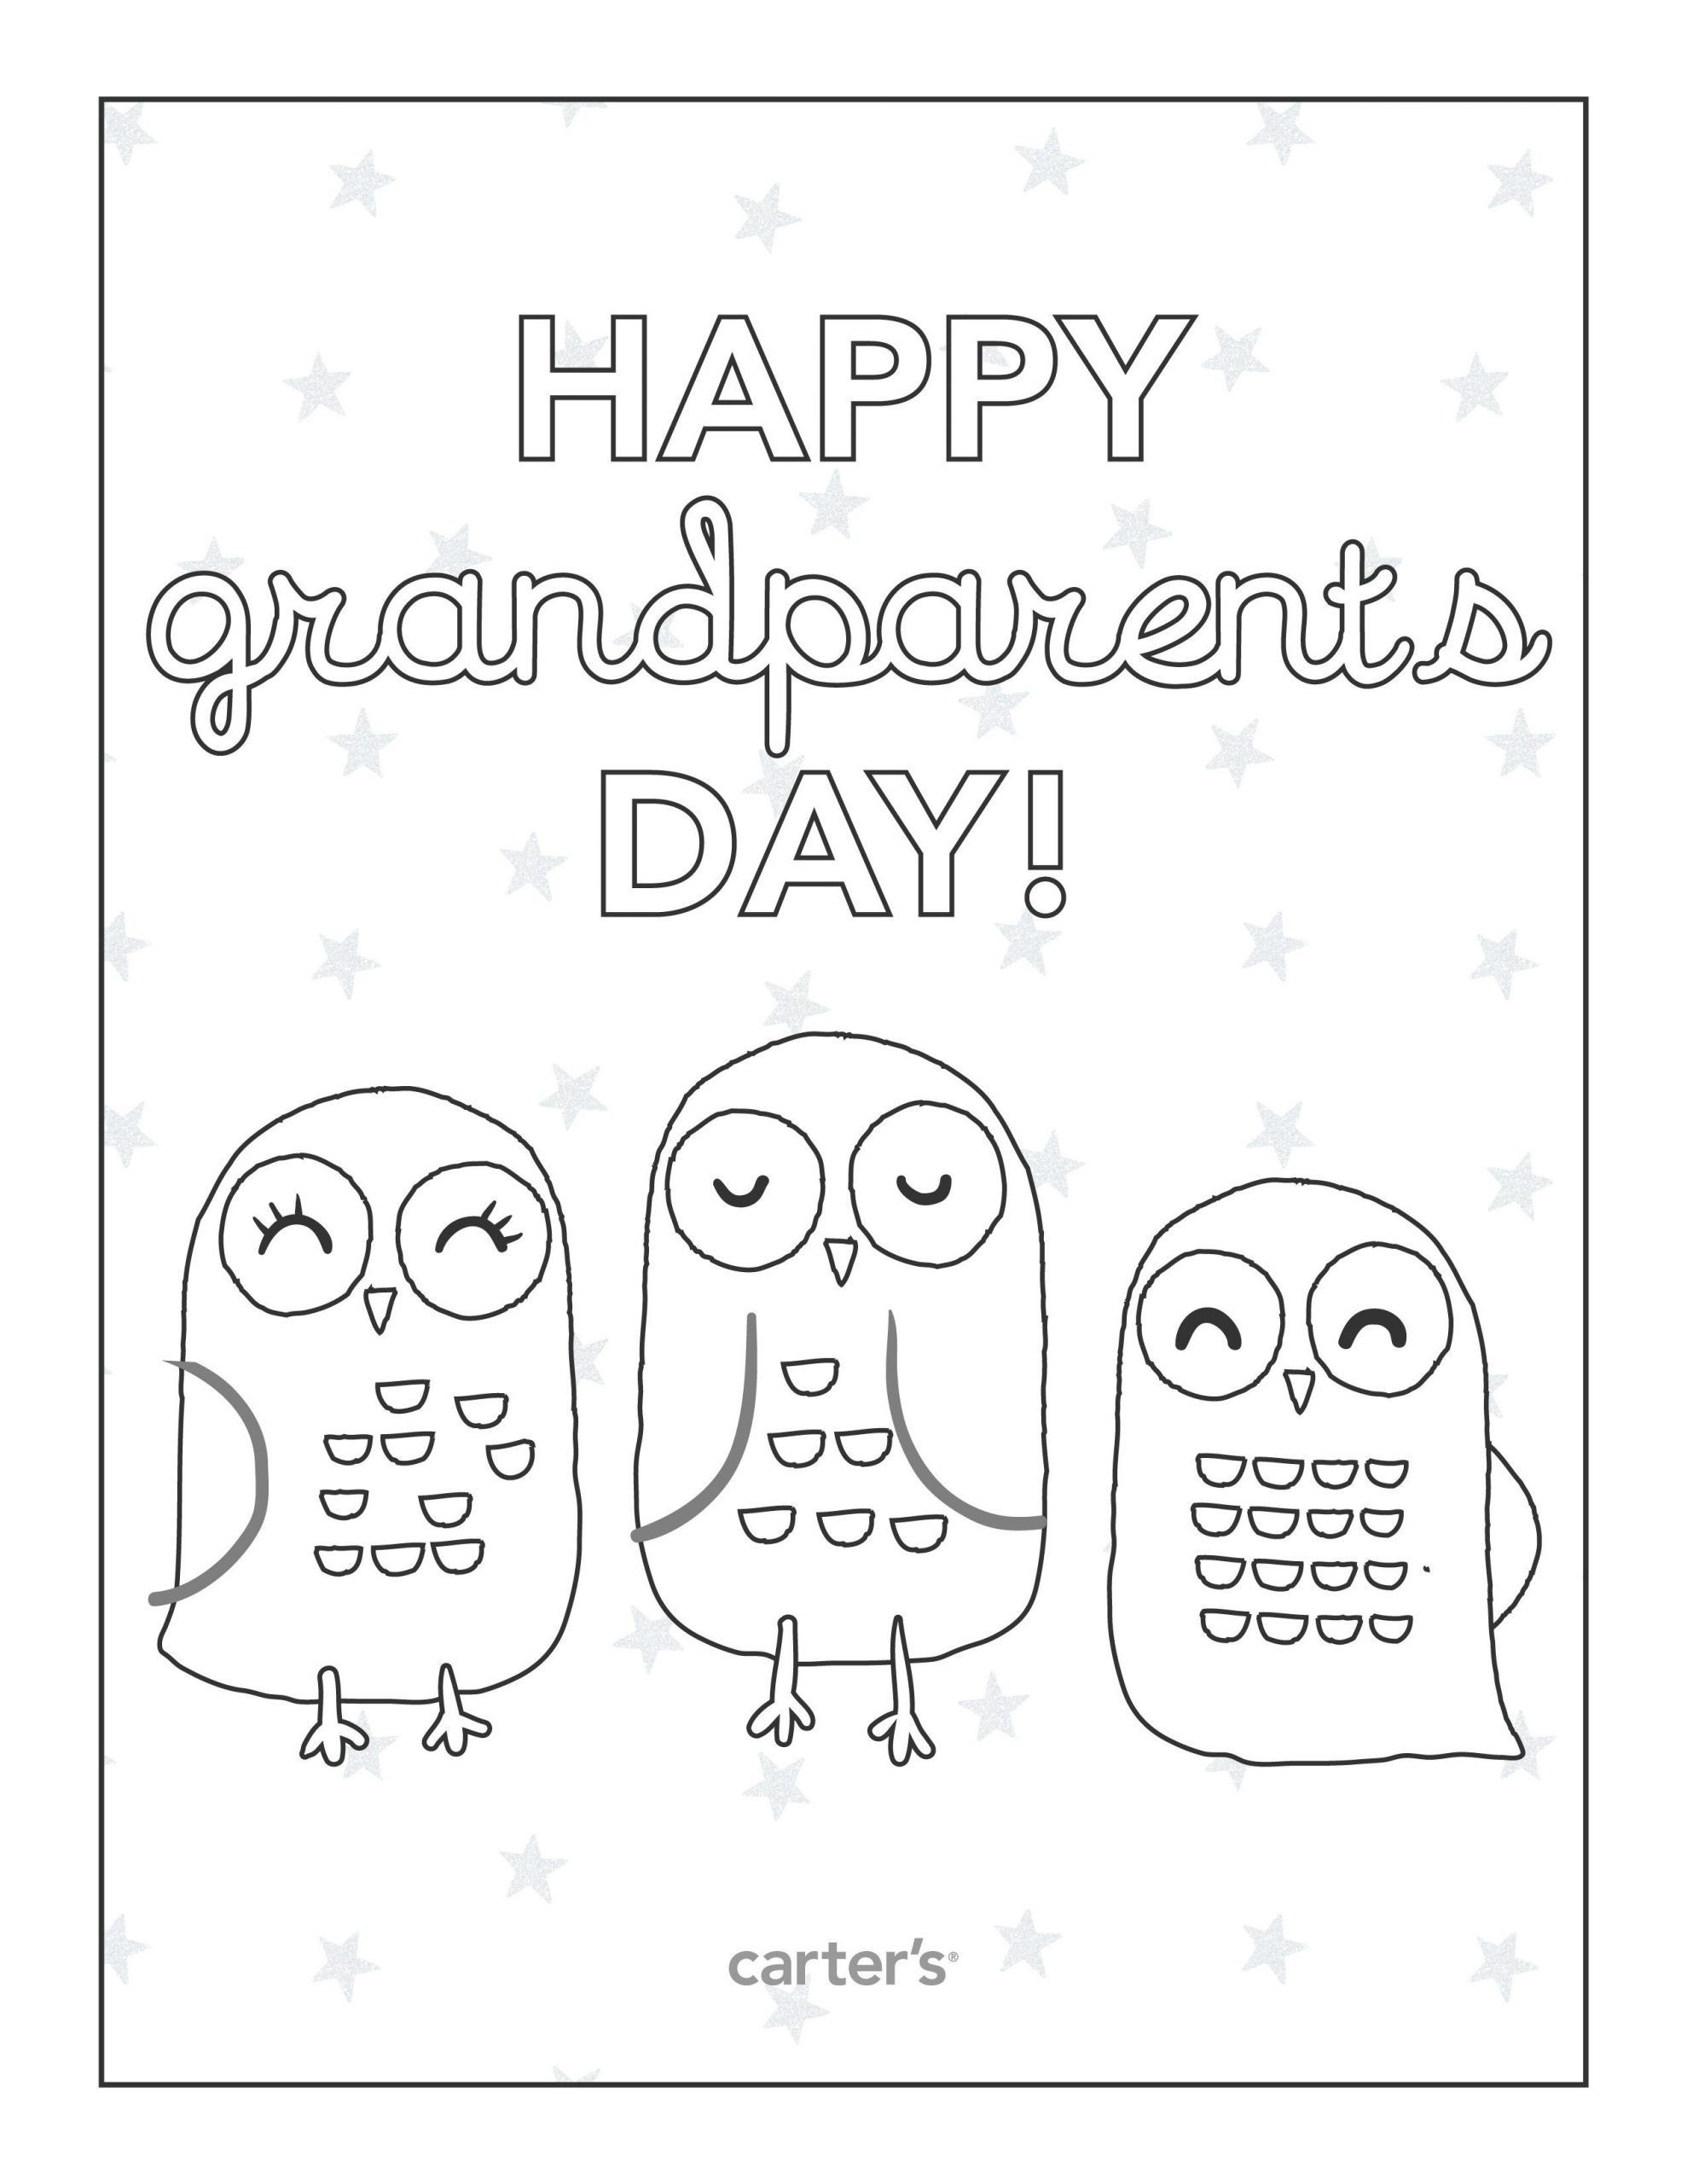 Grandparents Day Printable Coloring Pages Free Printable Grandparents Day Coloring Pag In 2020 Happy Grandparents Day Grandparents Day Gifts Veterans Day Coloring Page